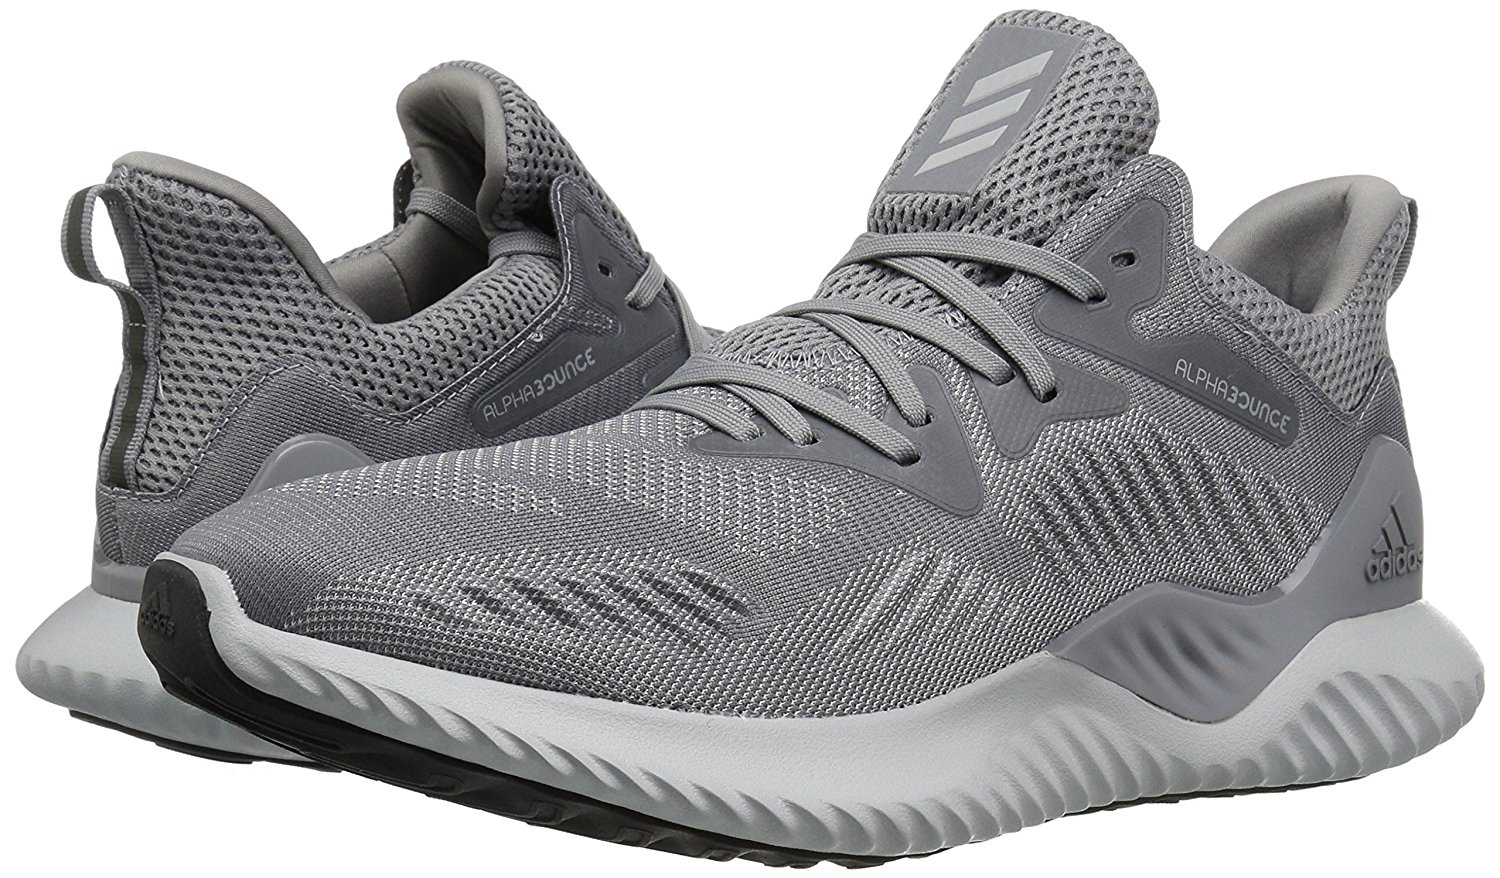 2aca8c3b14e52 Adidas Alphabounce Beyond Tested for Performance in 2019